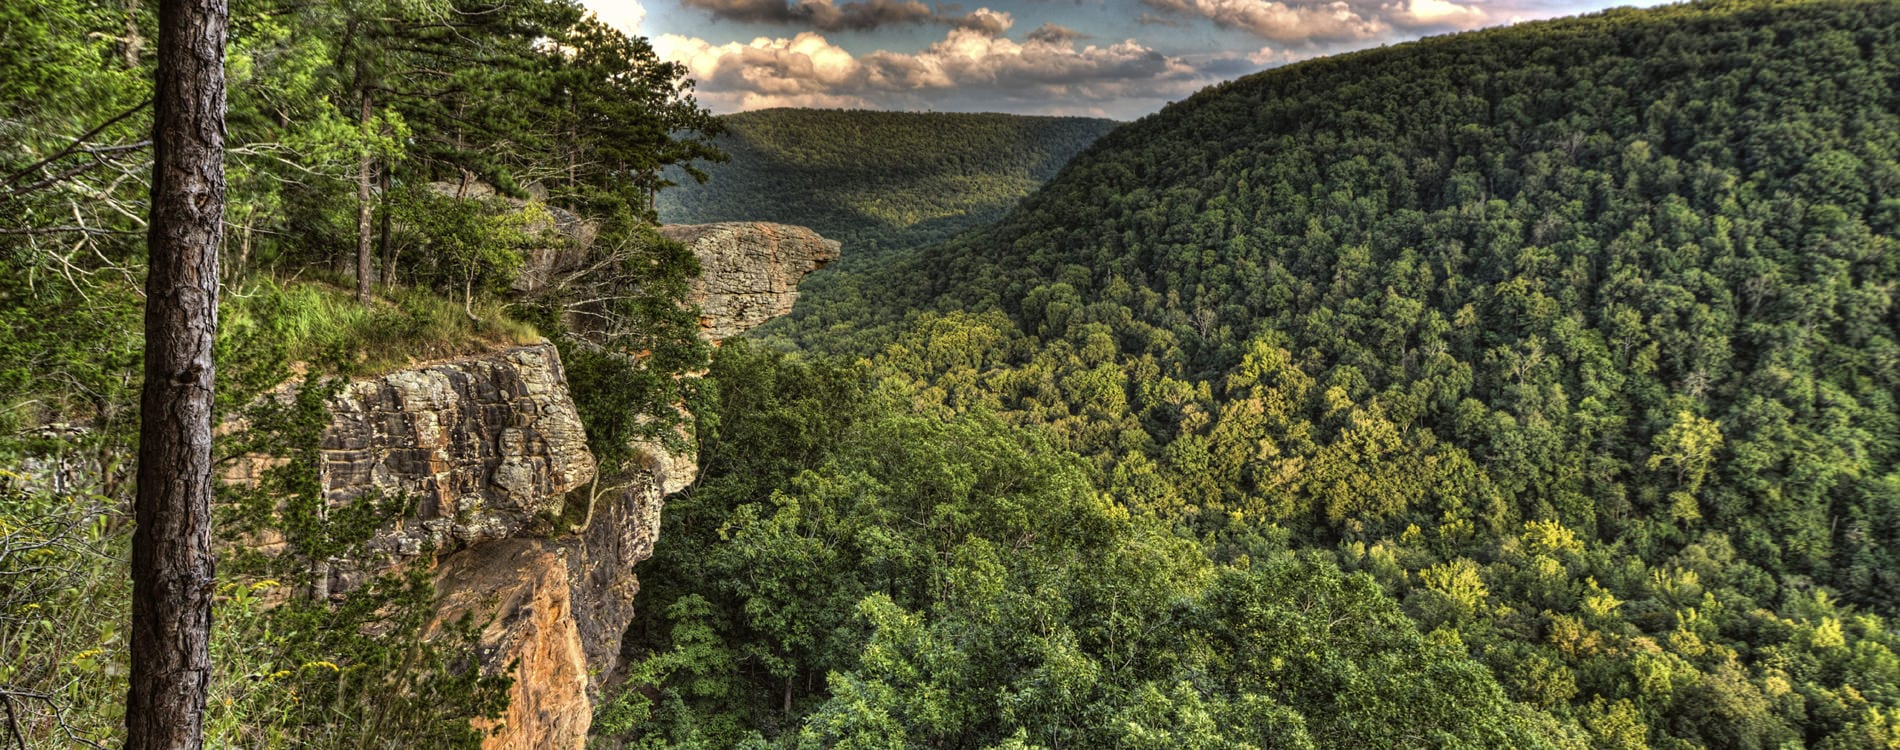 Whitaker Point in the Ozark Mountains Arkansas